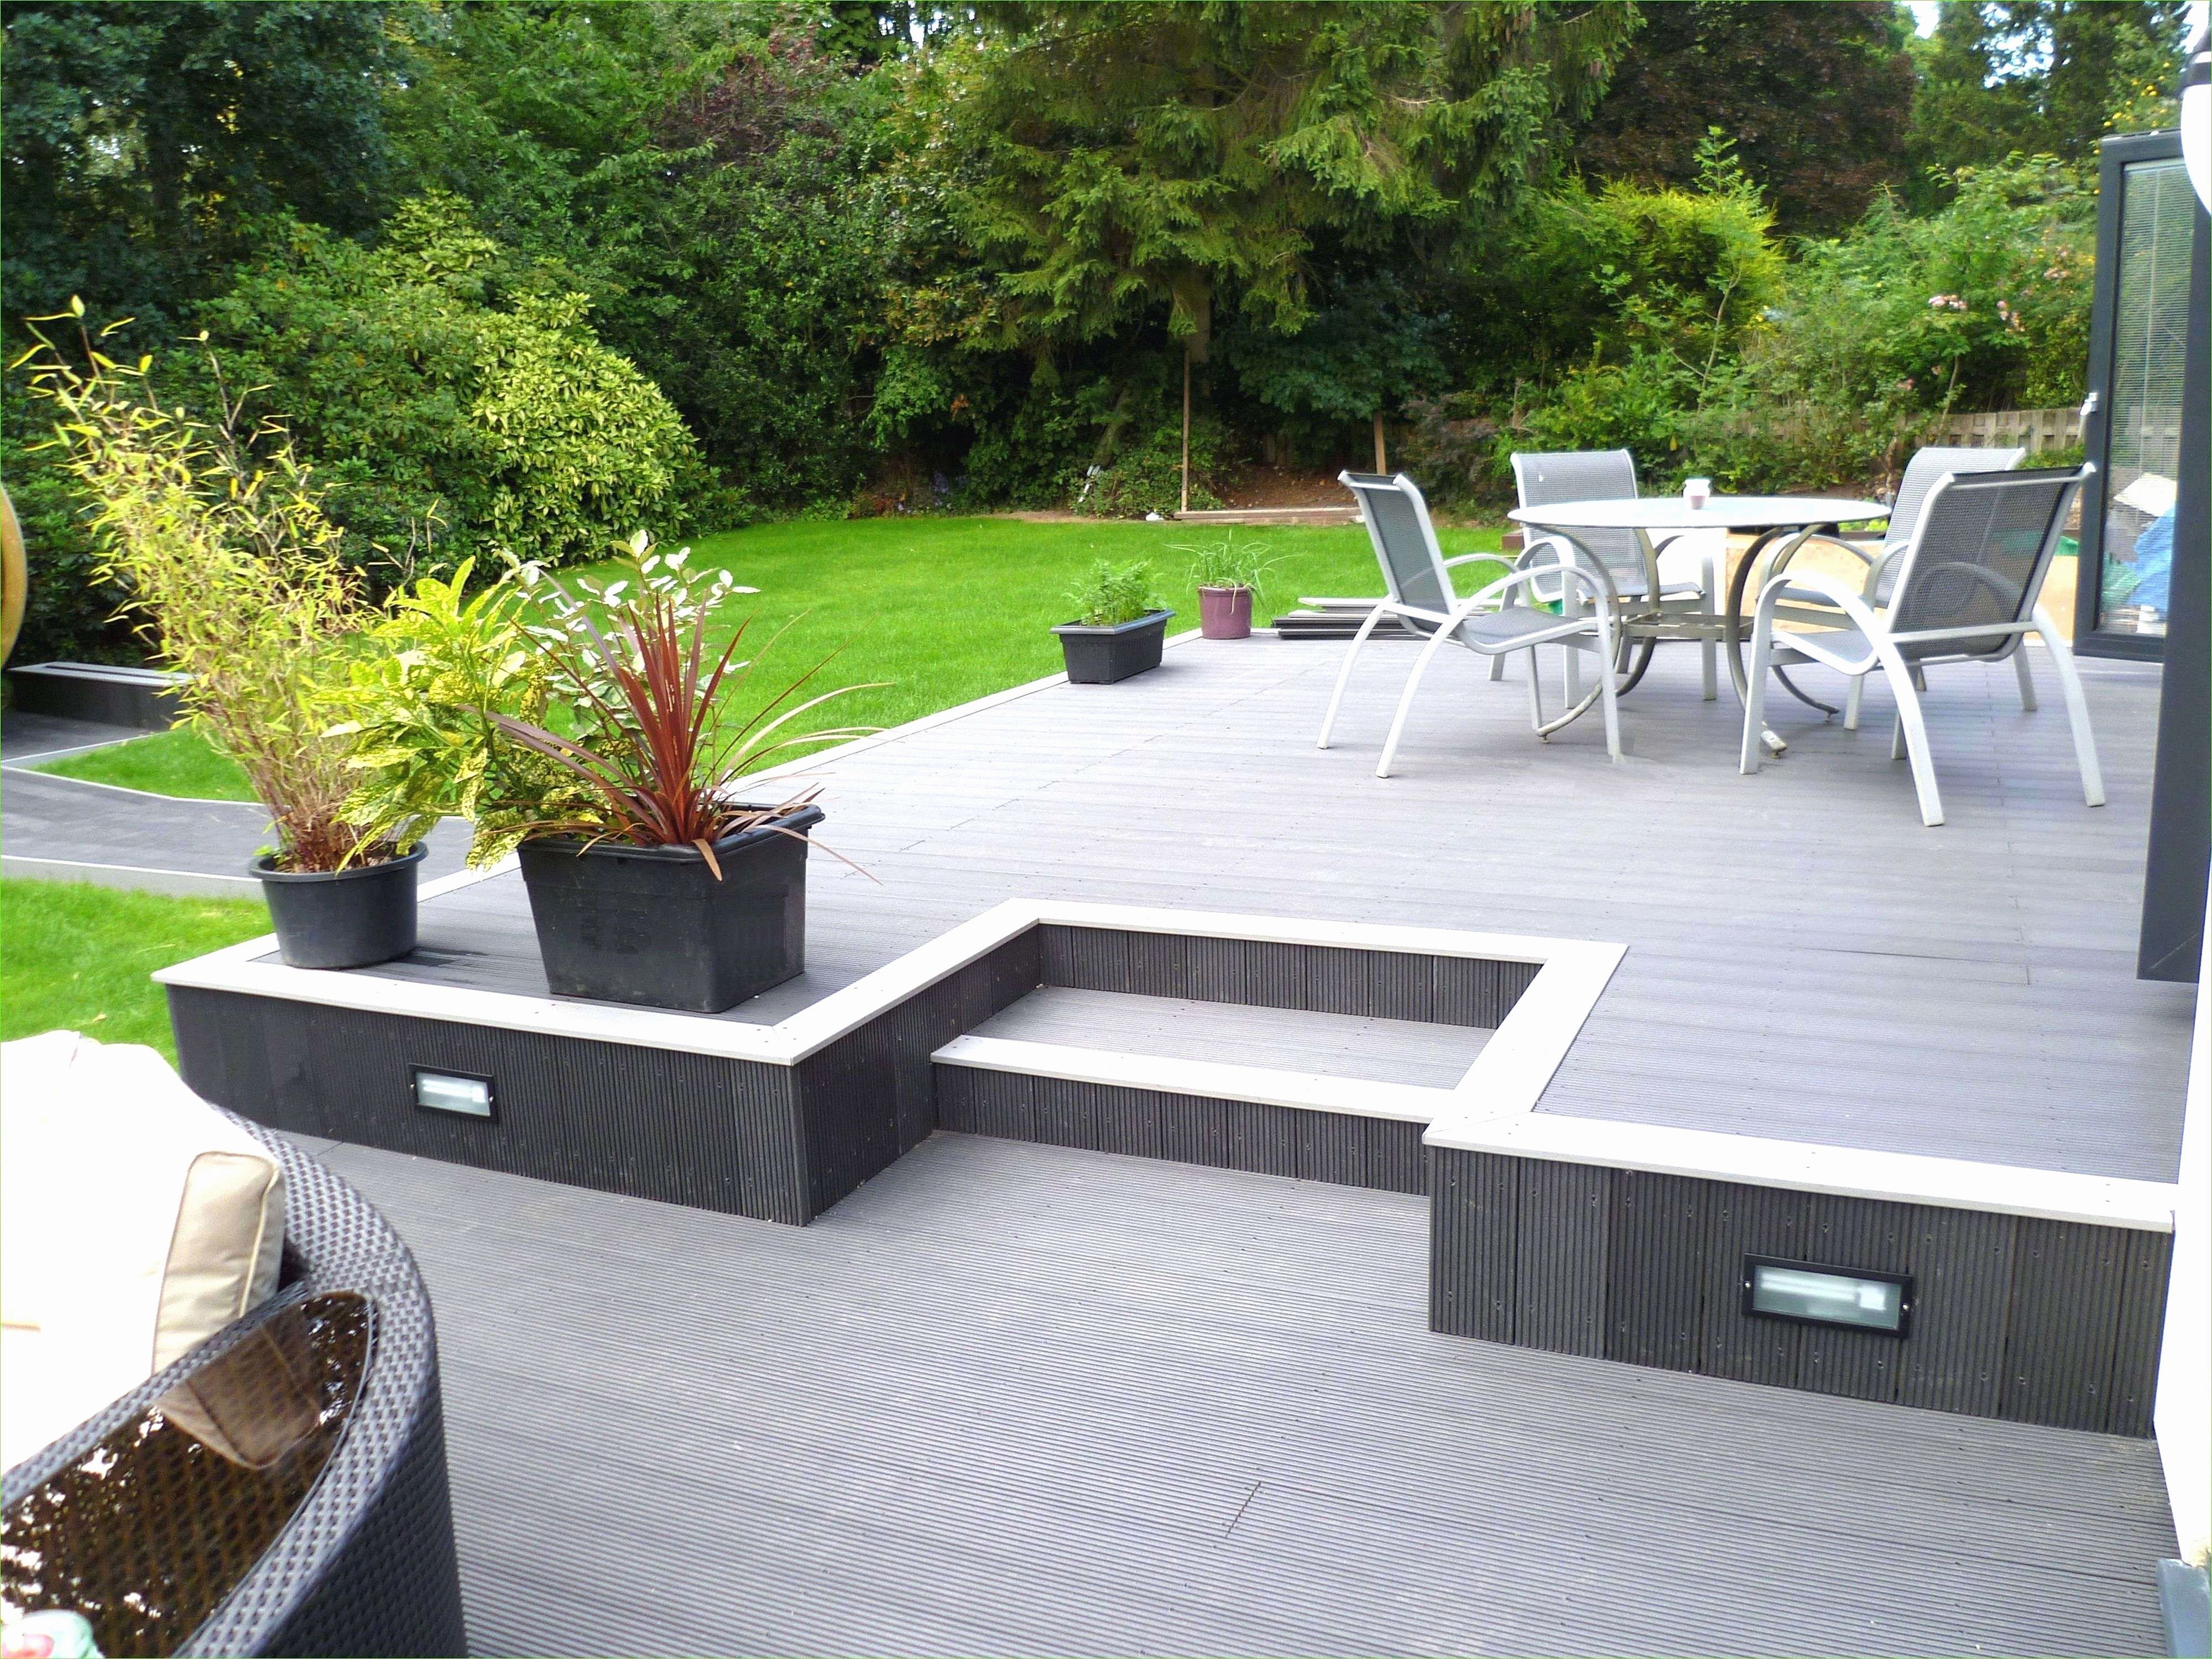 17 modern and unique backyard deck ideas for inspiration on modern deck patio ideas for backyard design and decoration ideas id=45903